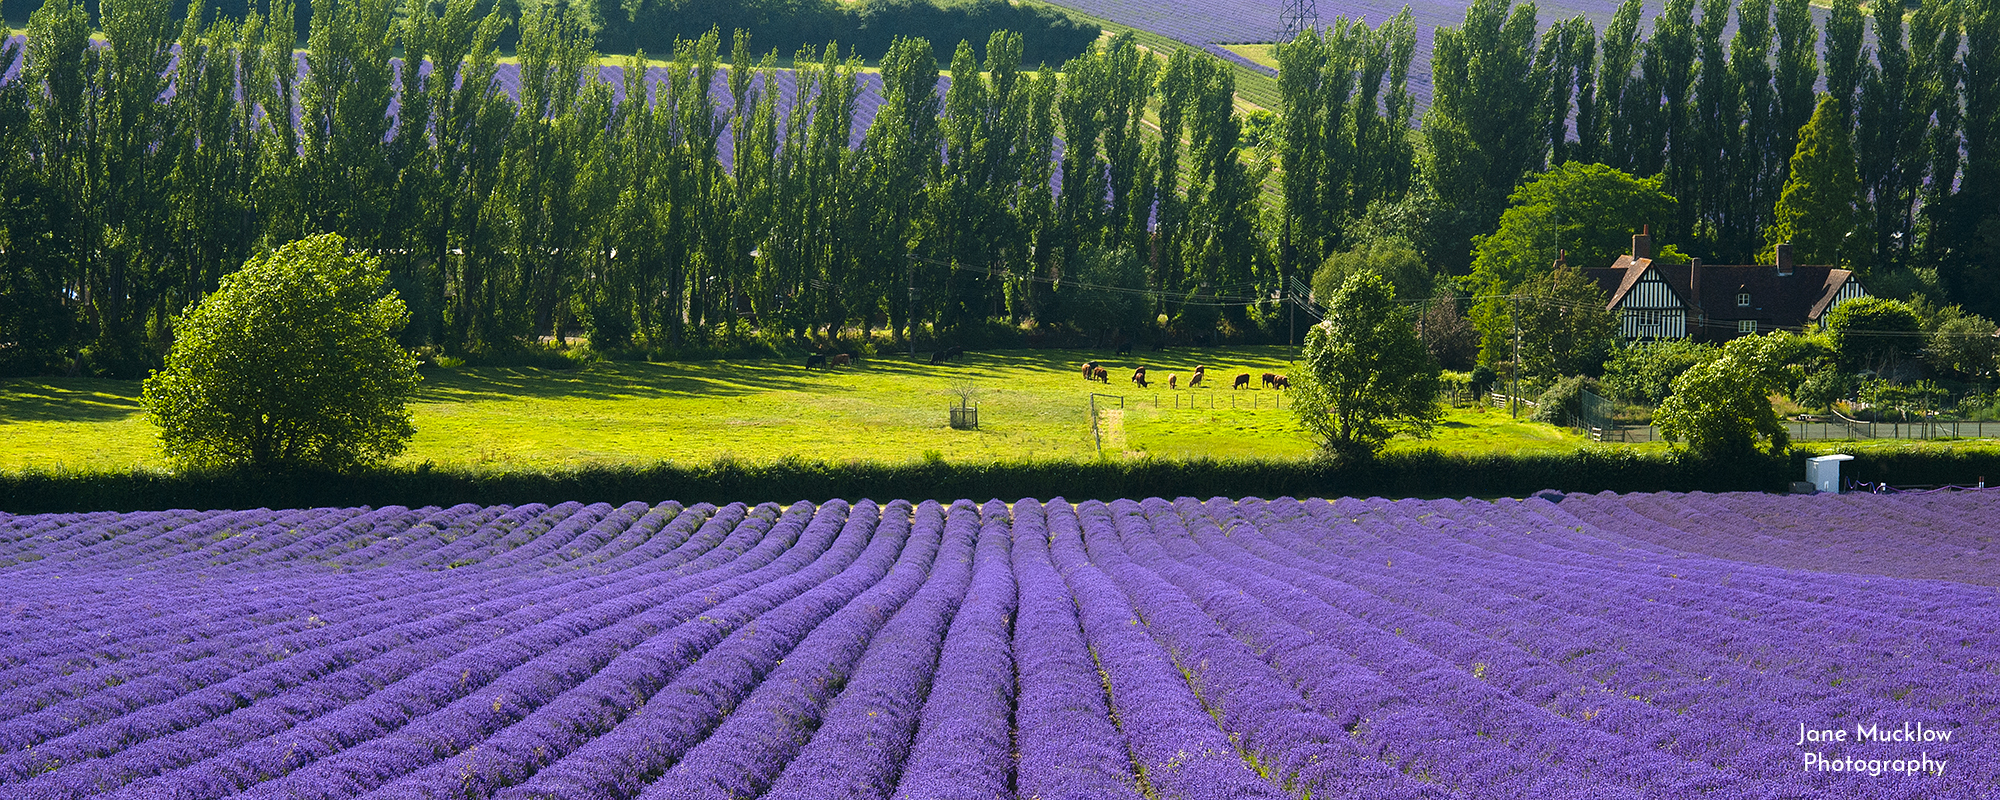 Photo by Jane Mucklow of the lavender fields and cows at Castle Farm, available as a canvas for your wall.